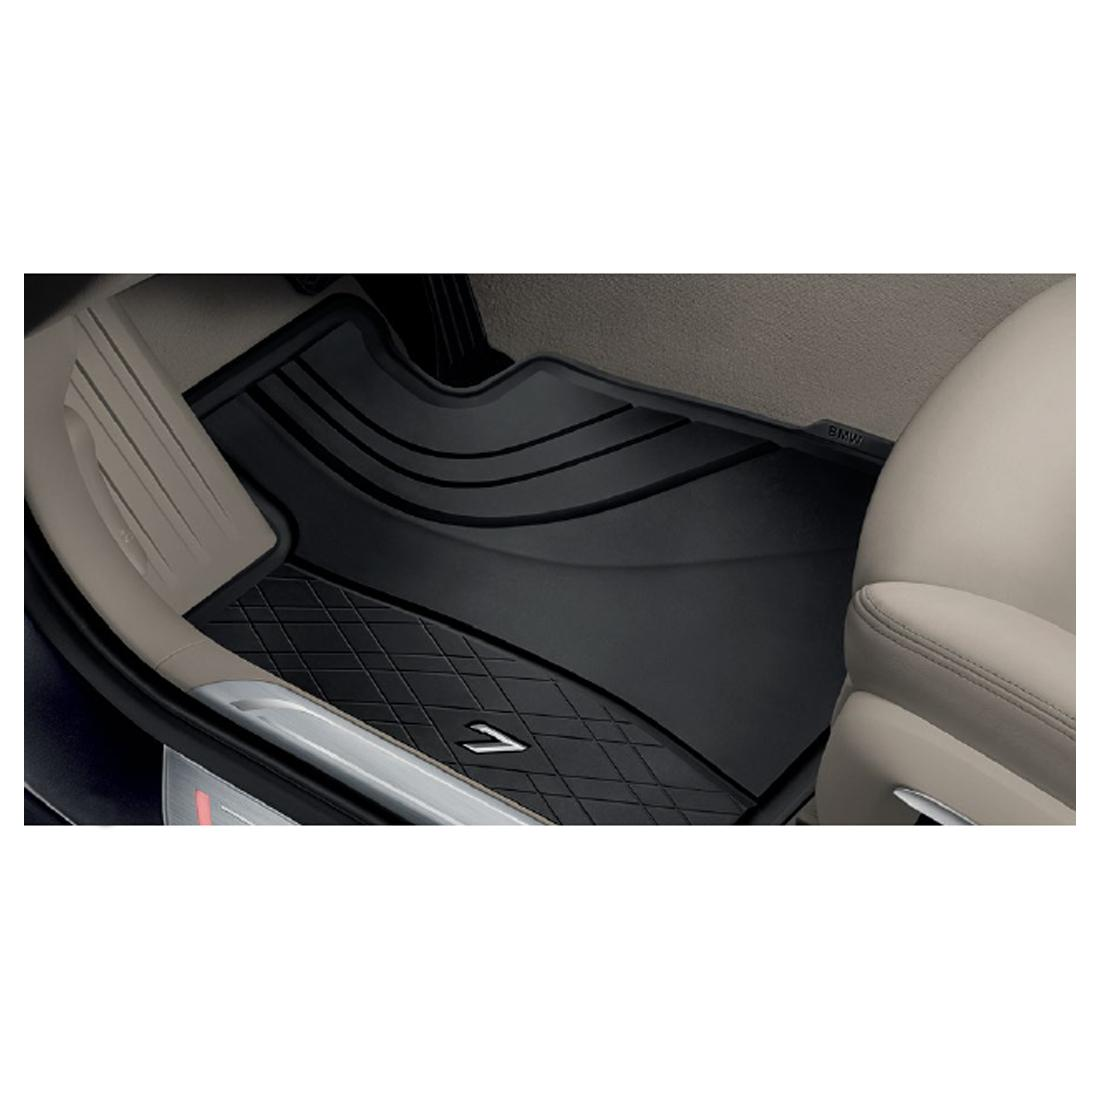 ShopBMWUSA.com: ALL-WEATHER FLOOR MATS